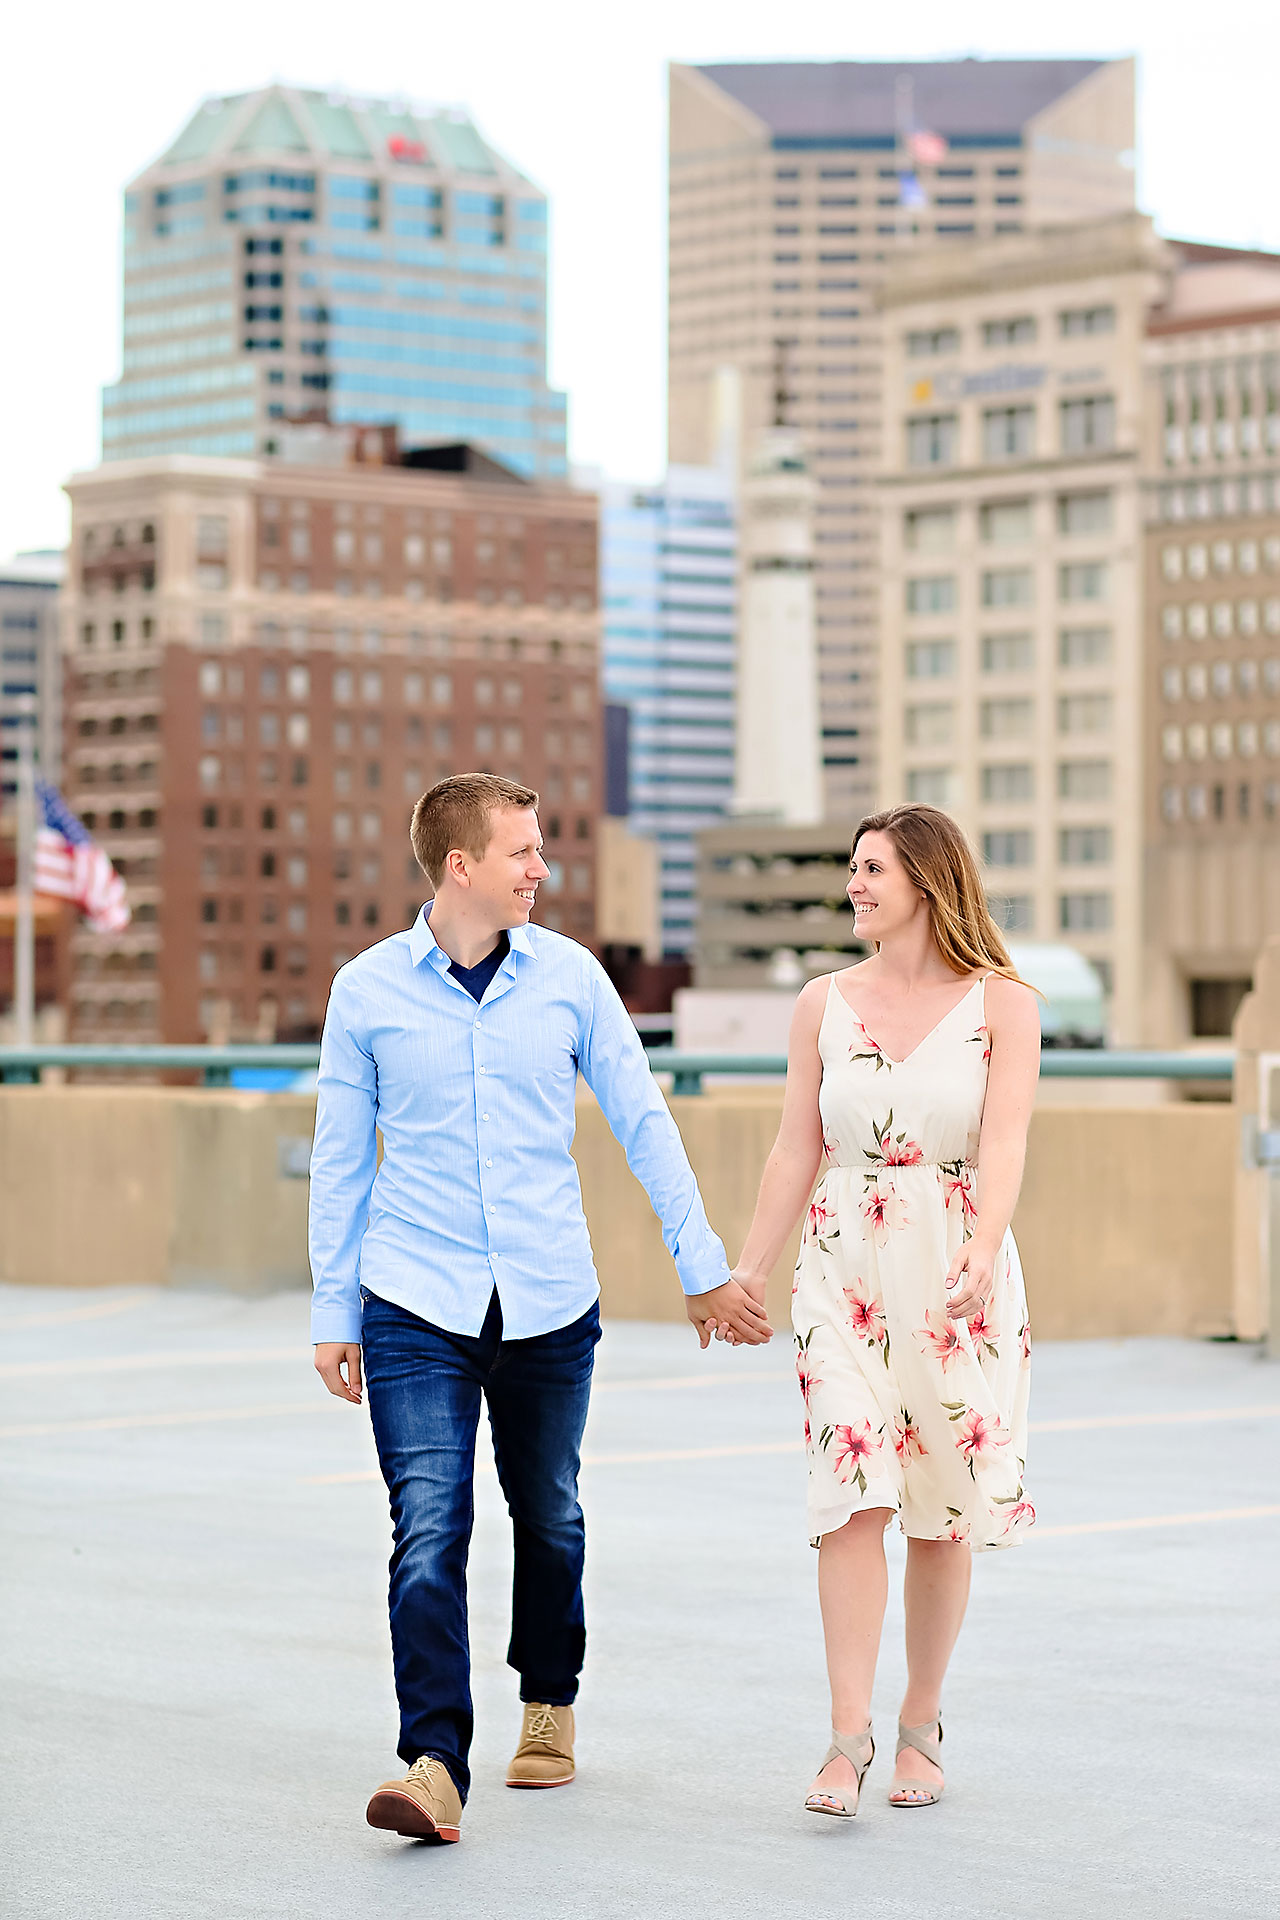 Chelsea Jeff Downtown Indy Engagement Session 137